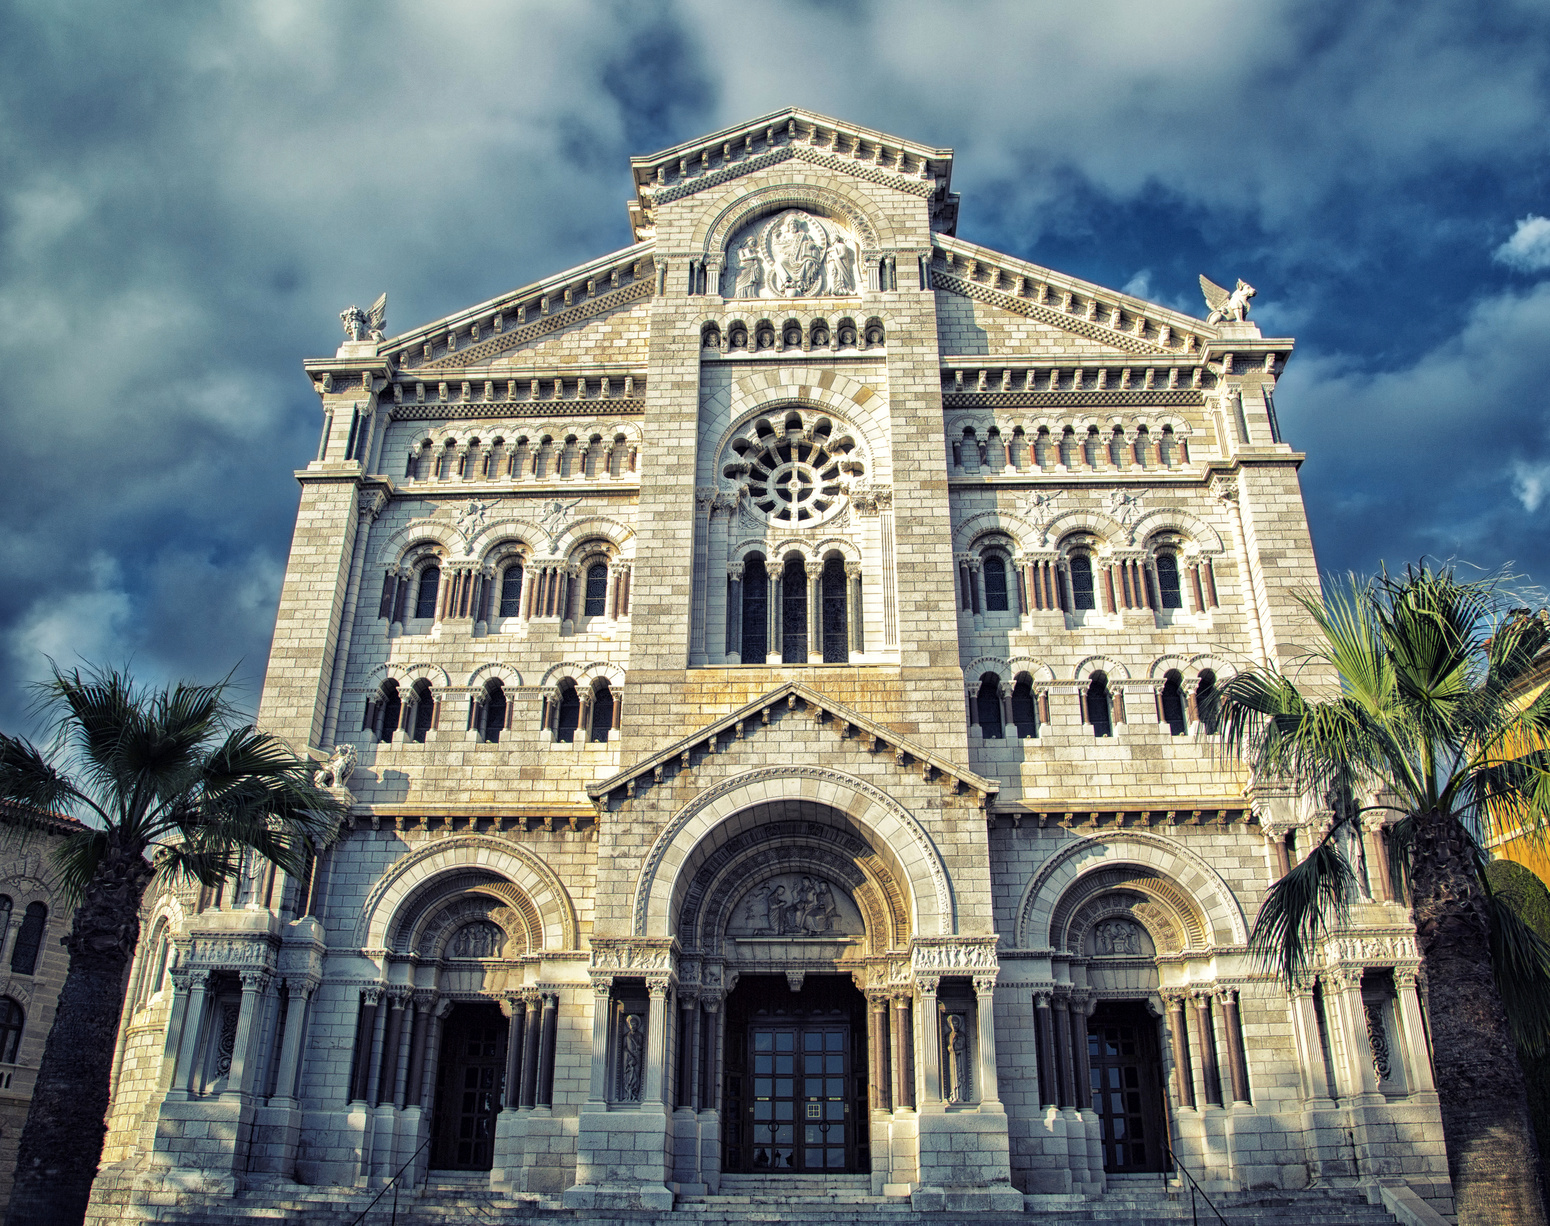 Facade of Saint Nicholas Cathedral. Monaco